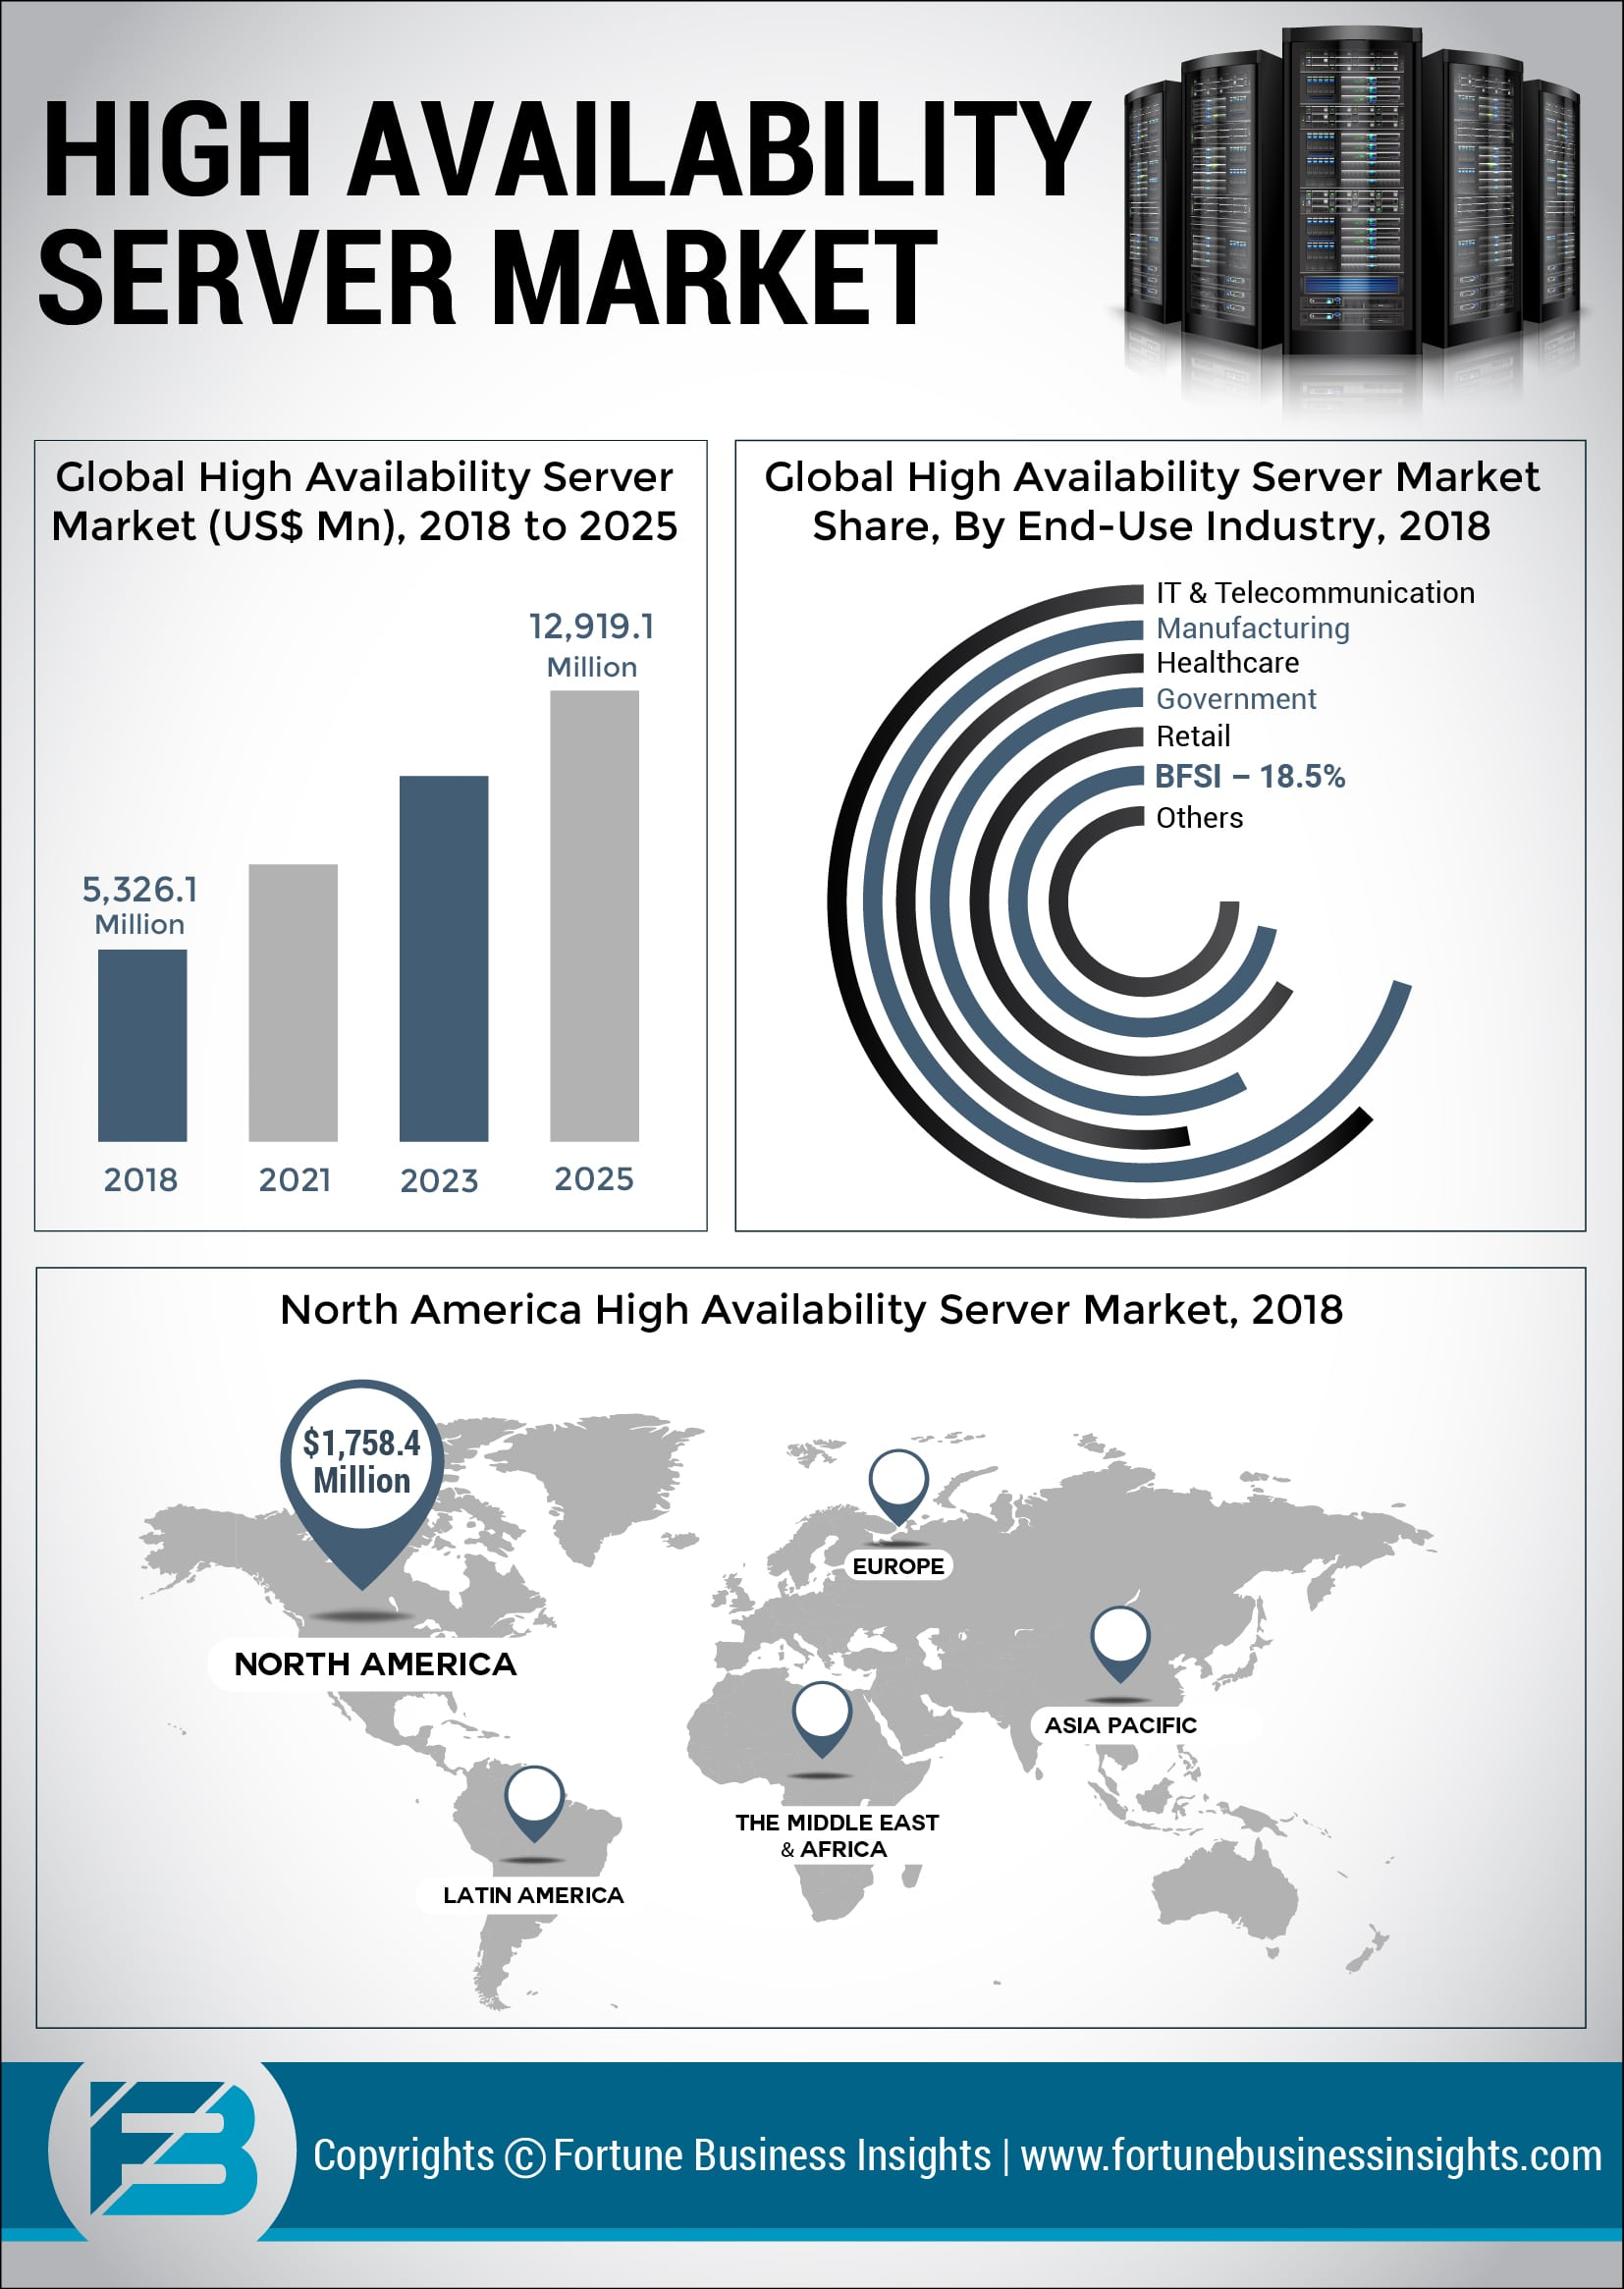 High Availability Server Market